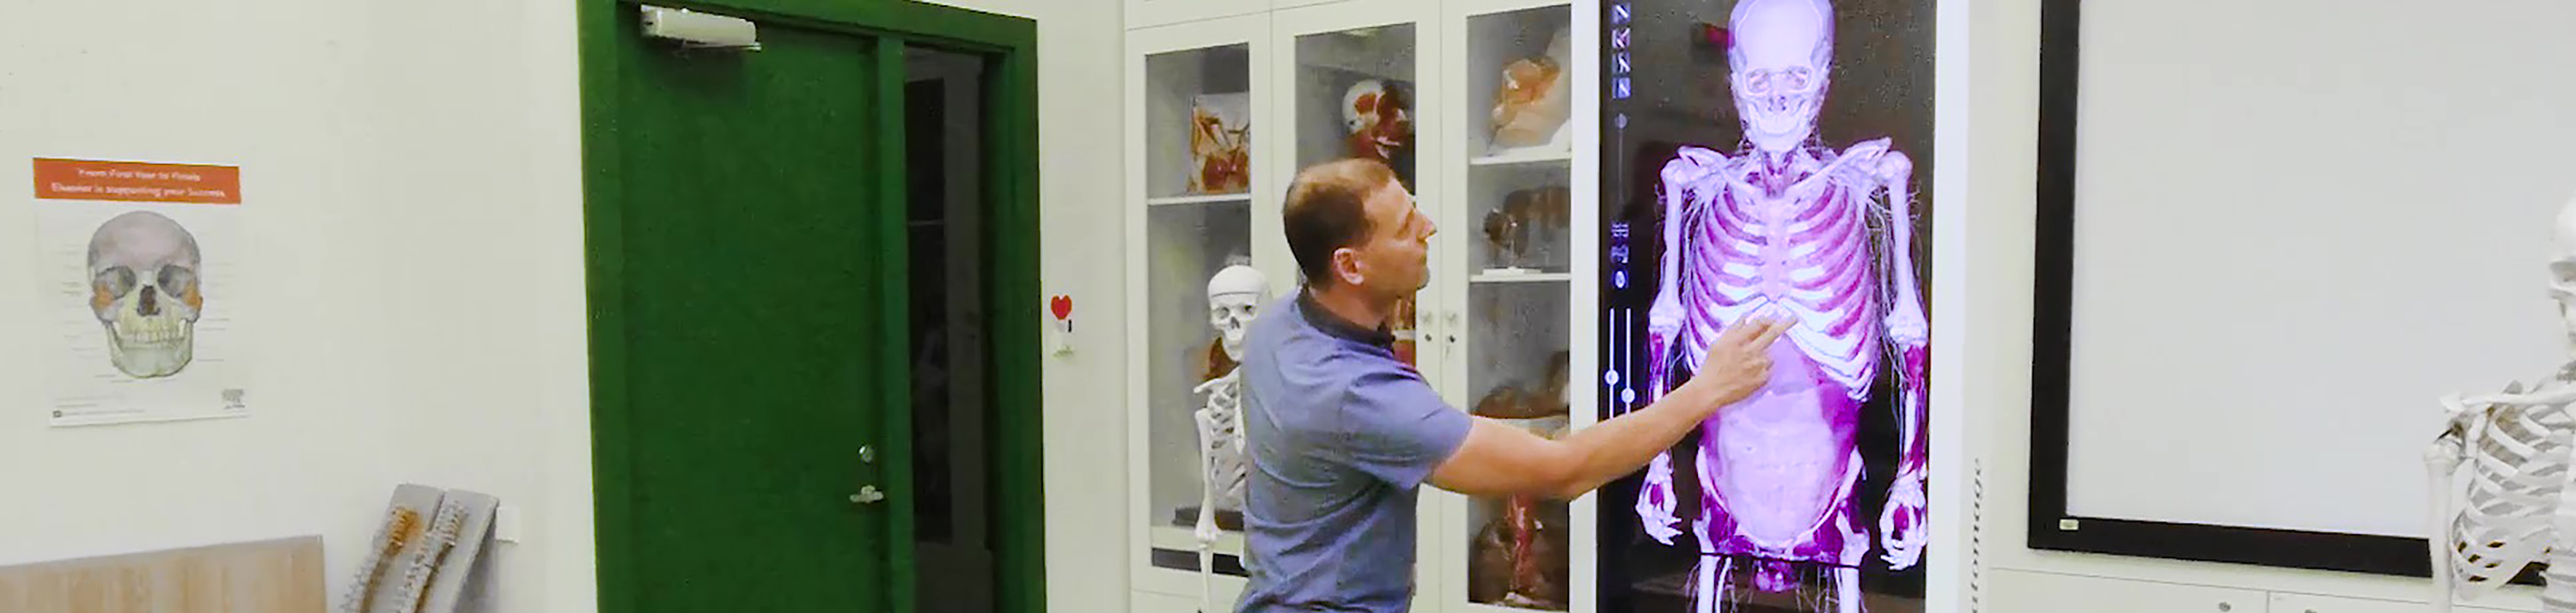 First Master's Programme in Radiography commences in Tartu